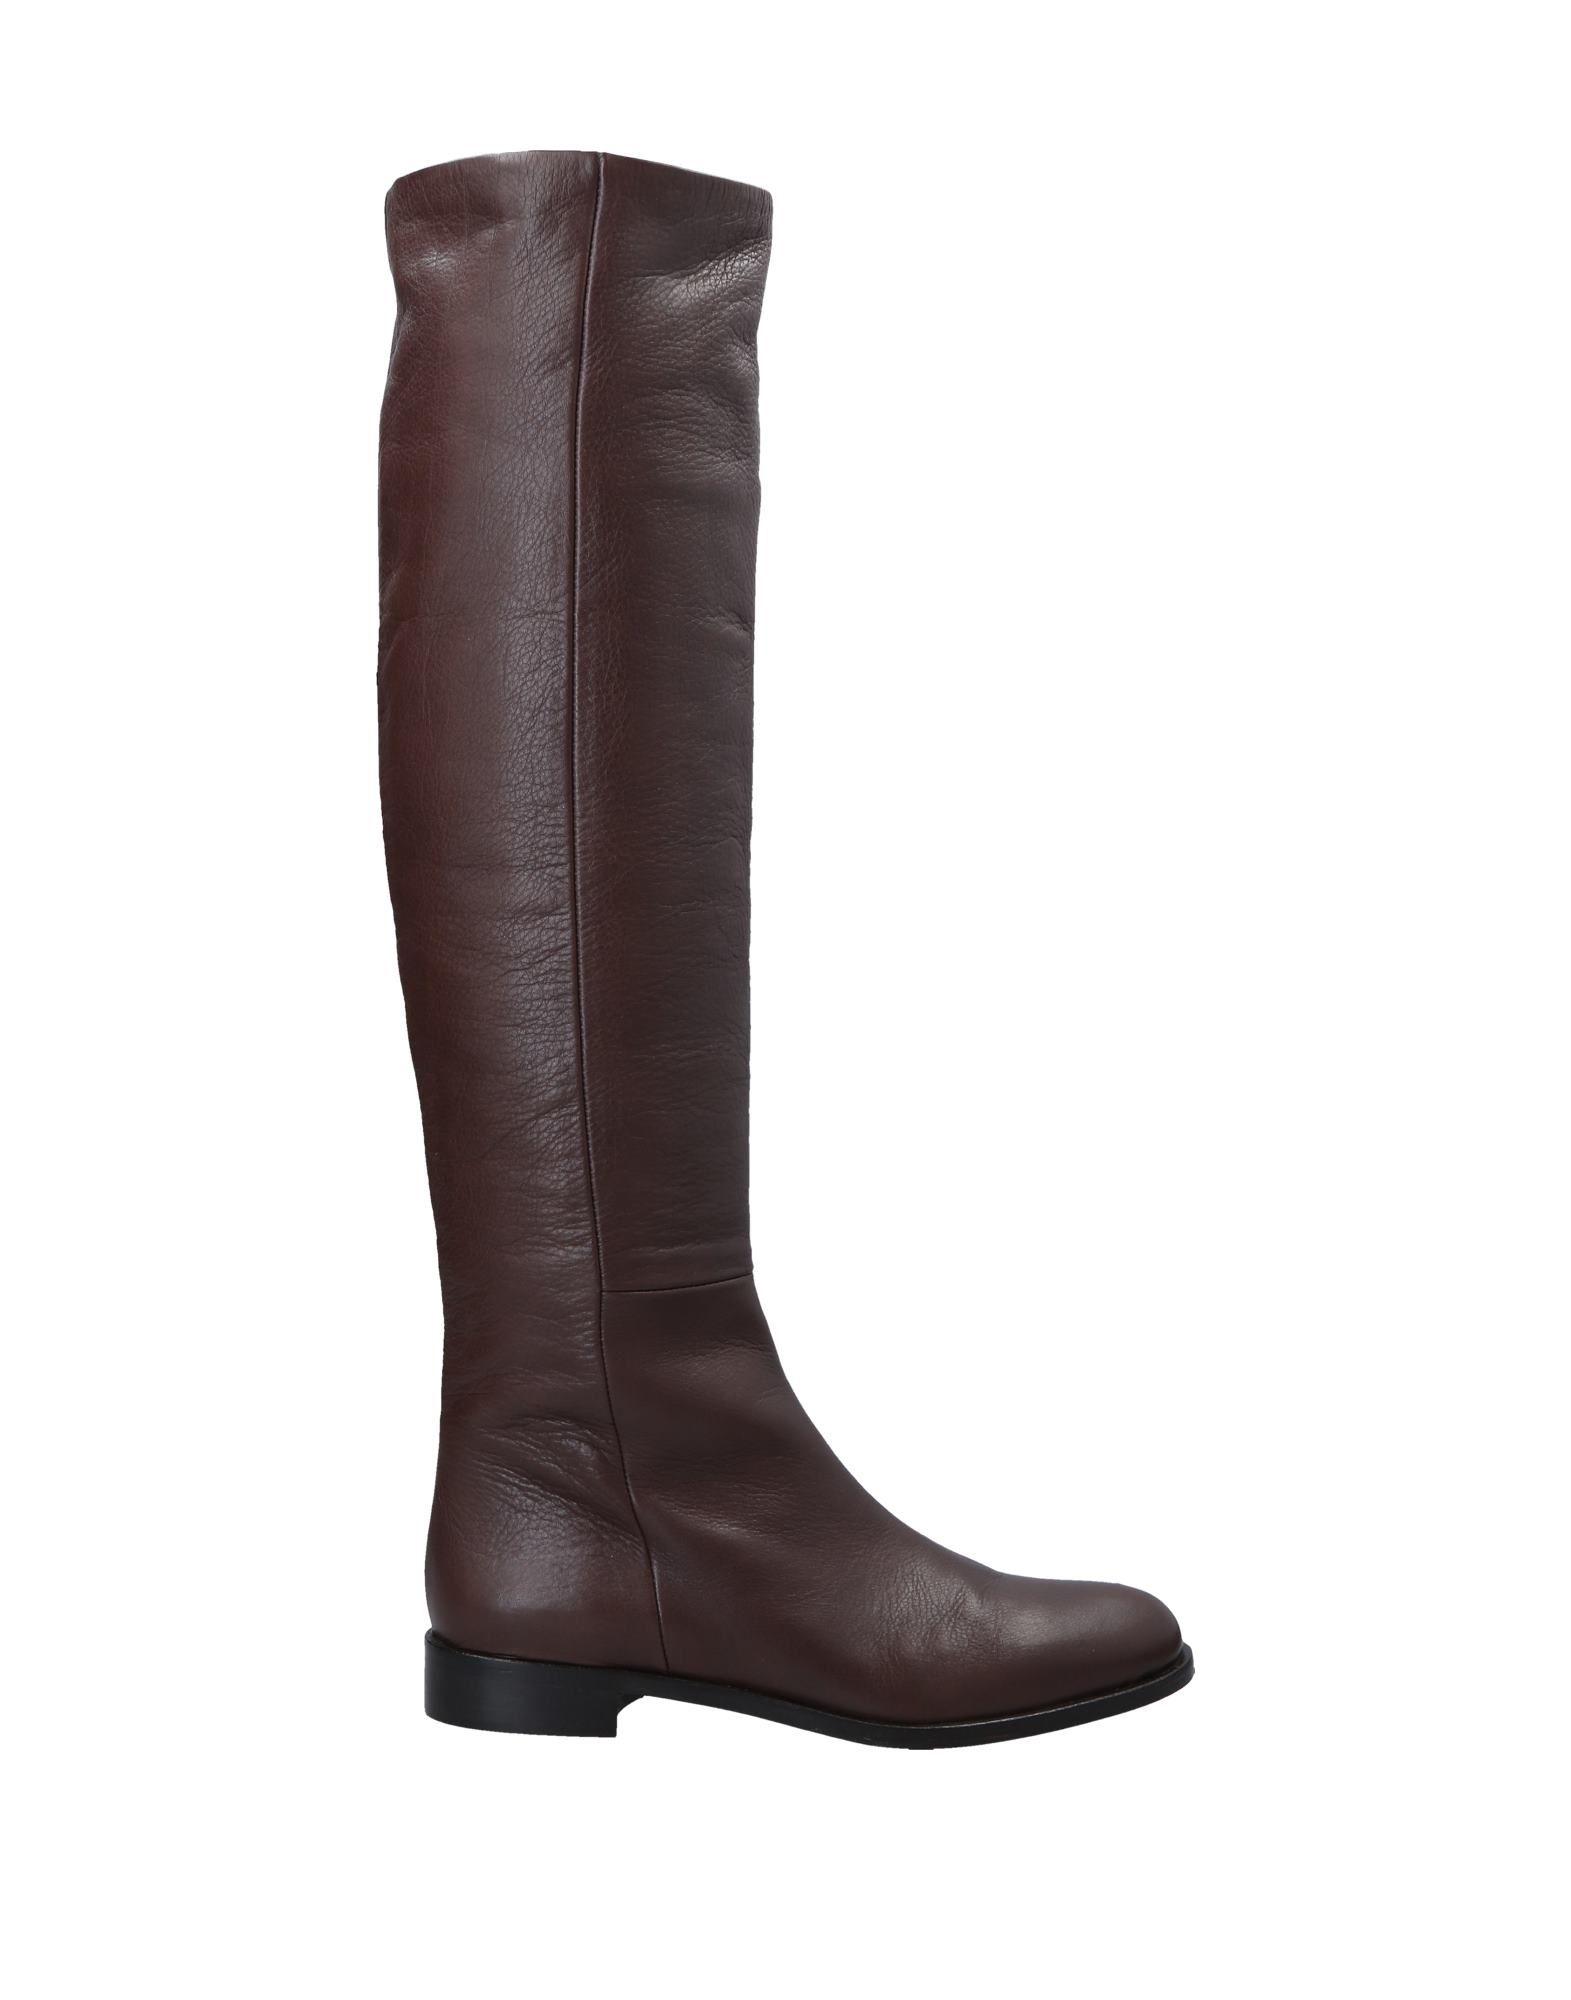 J|D Julie Dee Boots - Boots Women J|D Julie Dee Boots - online on  Canada - 11547435EX 98cd73